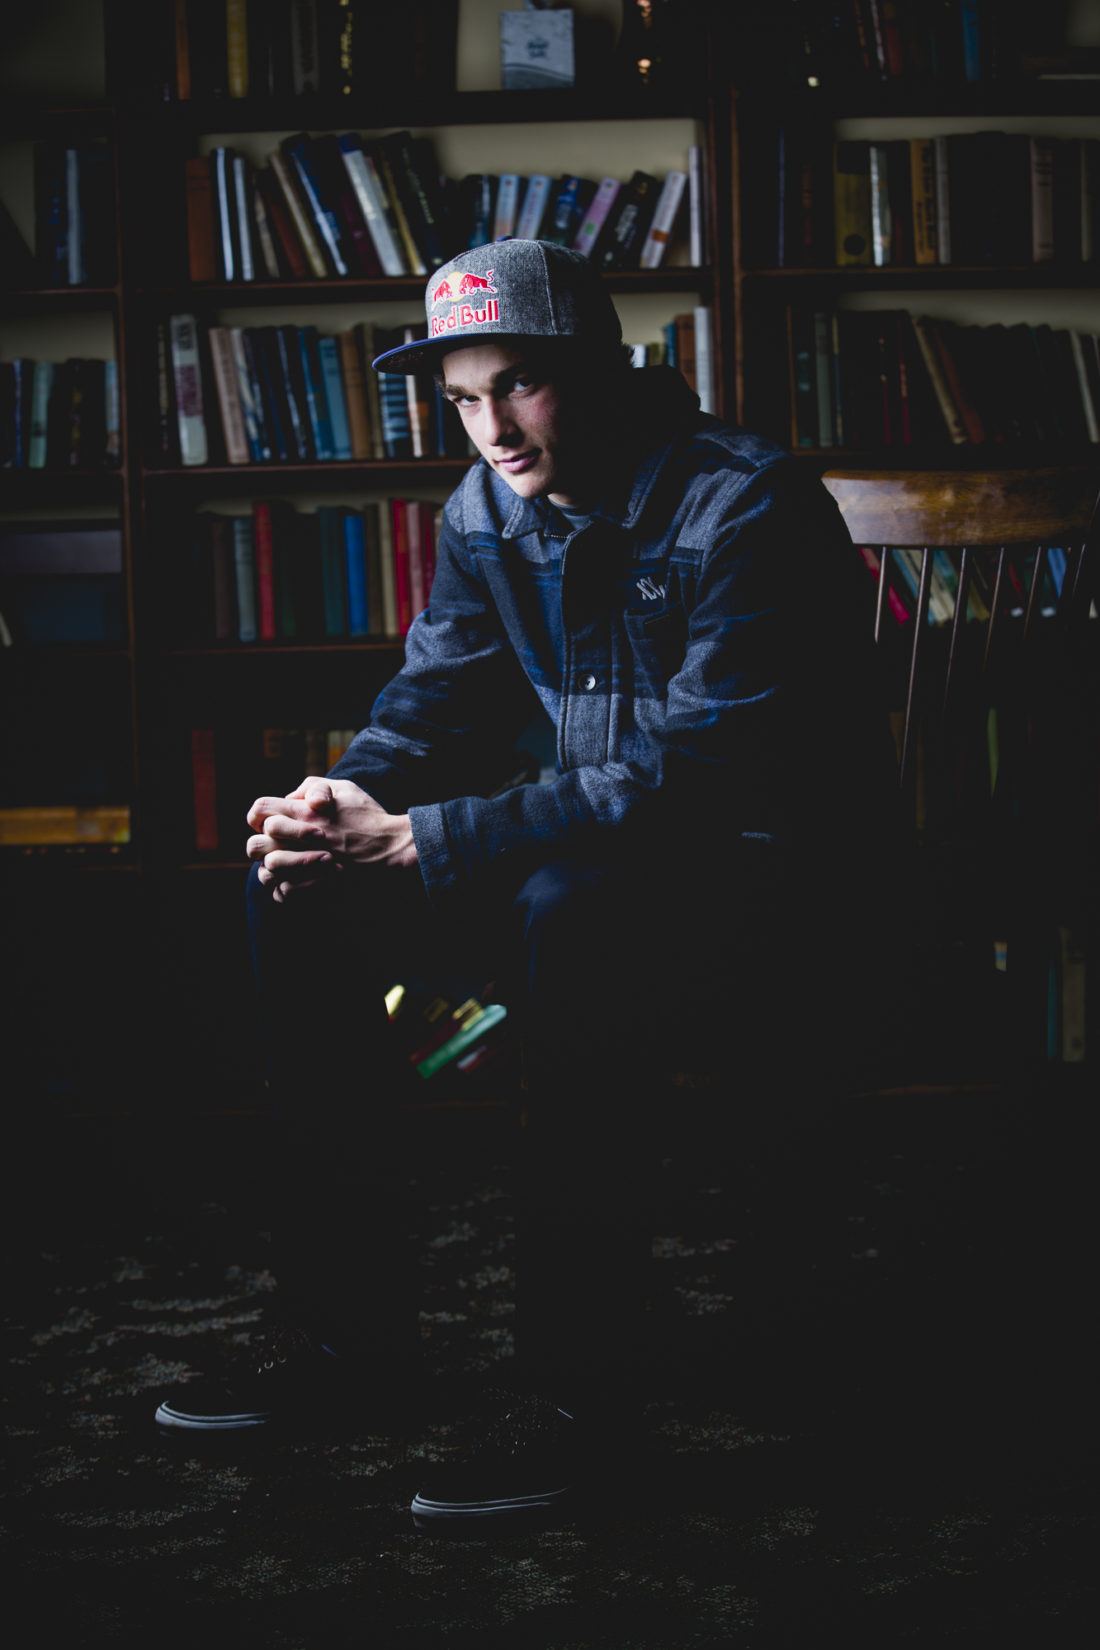 Olympic Bronze Medalist Nick Goepper, photographed for Freeskier Magazine